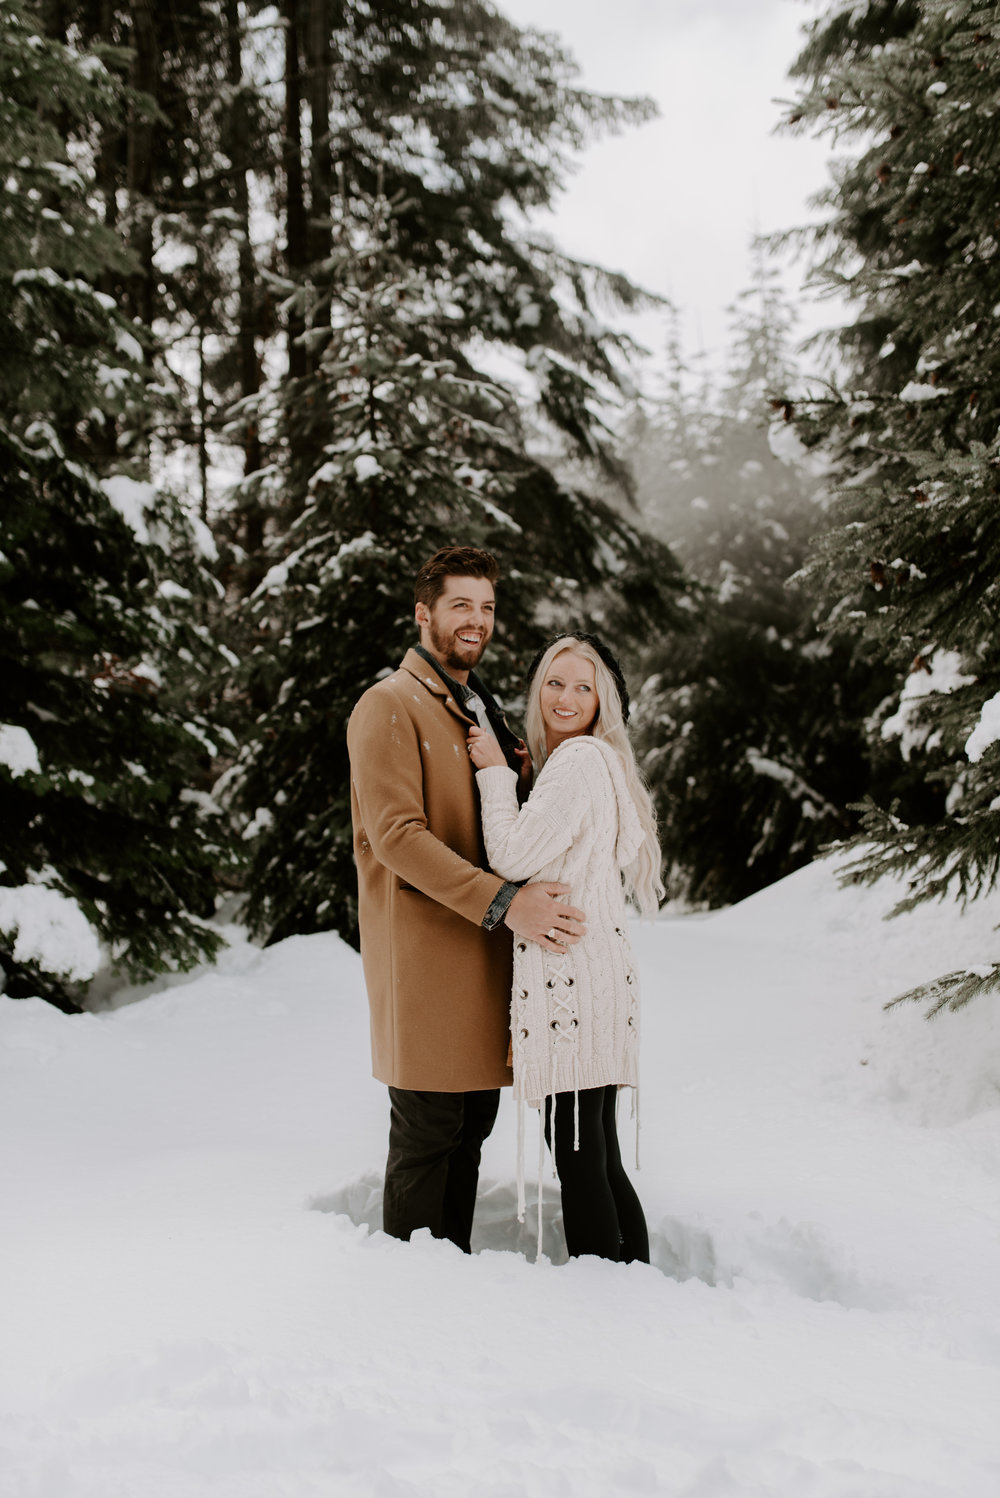 Washington adventure elopement and engagement photographer. Engagement session in the North Cascades.